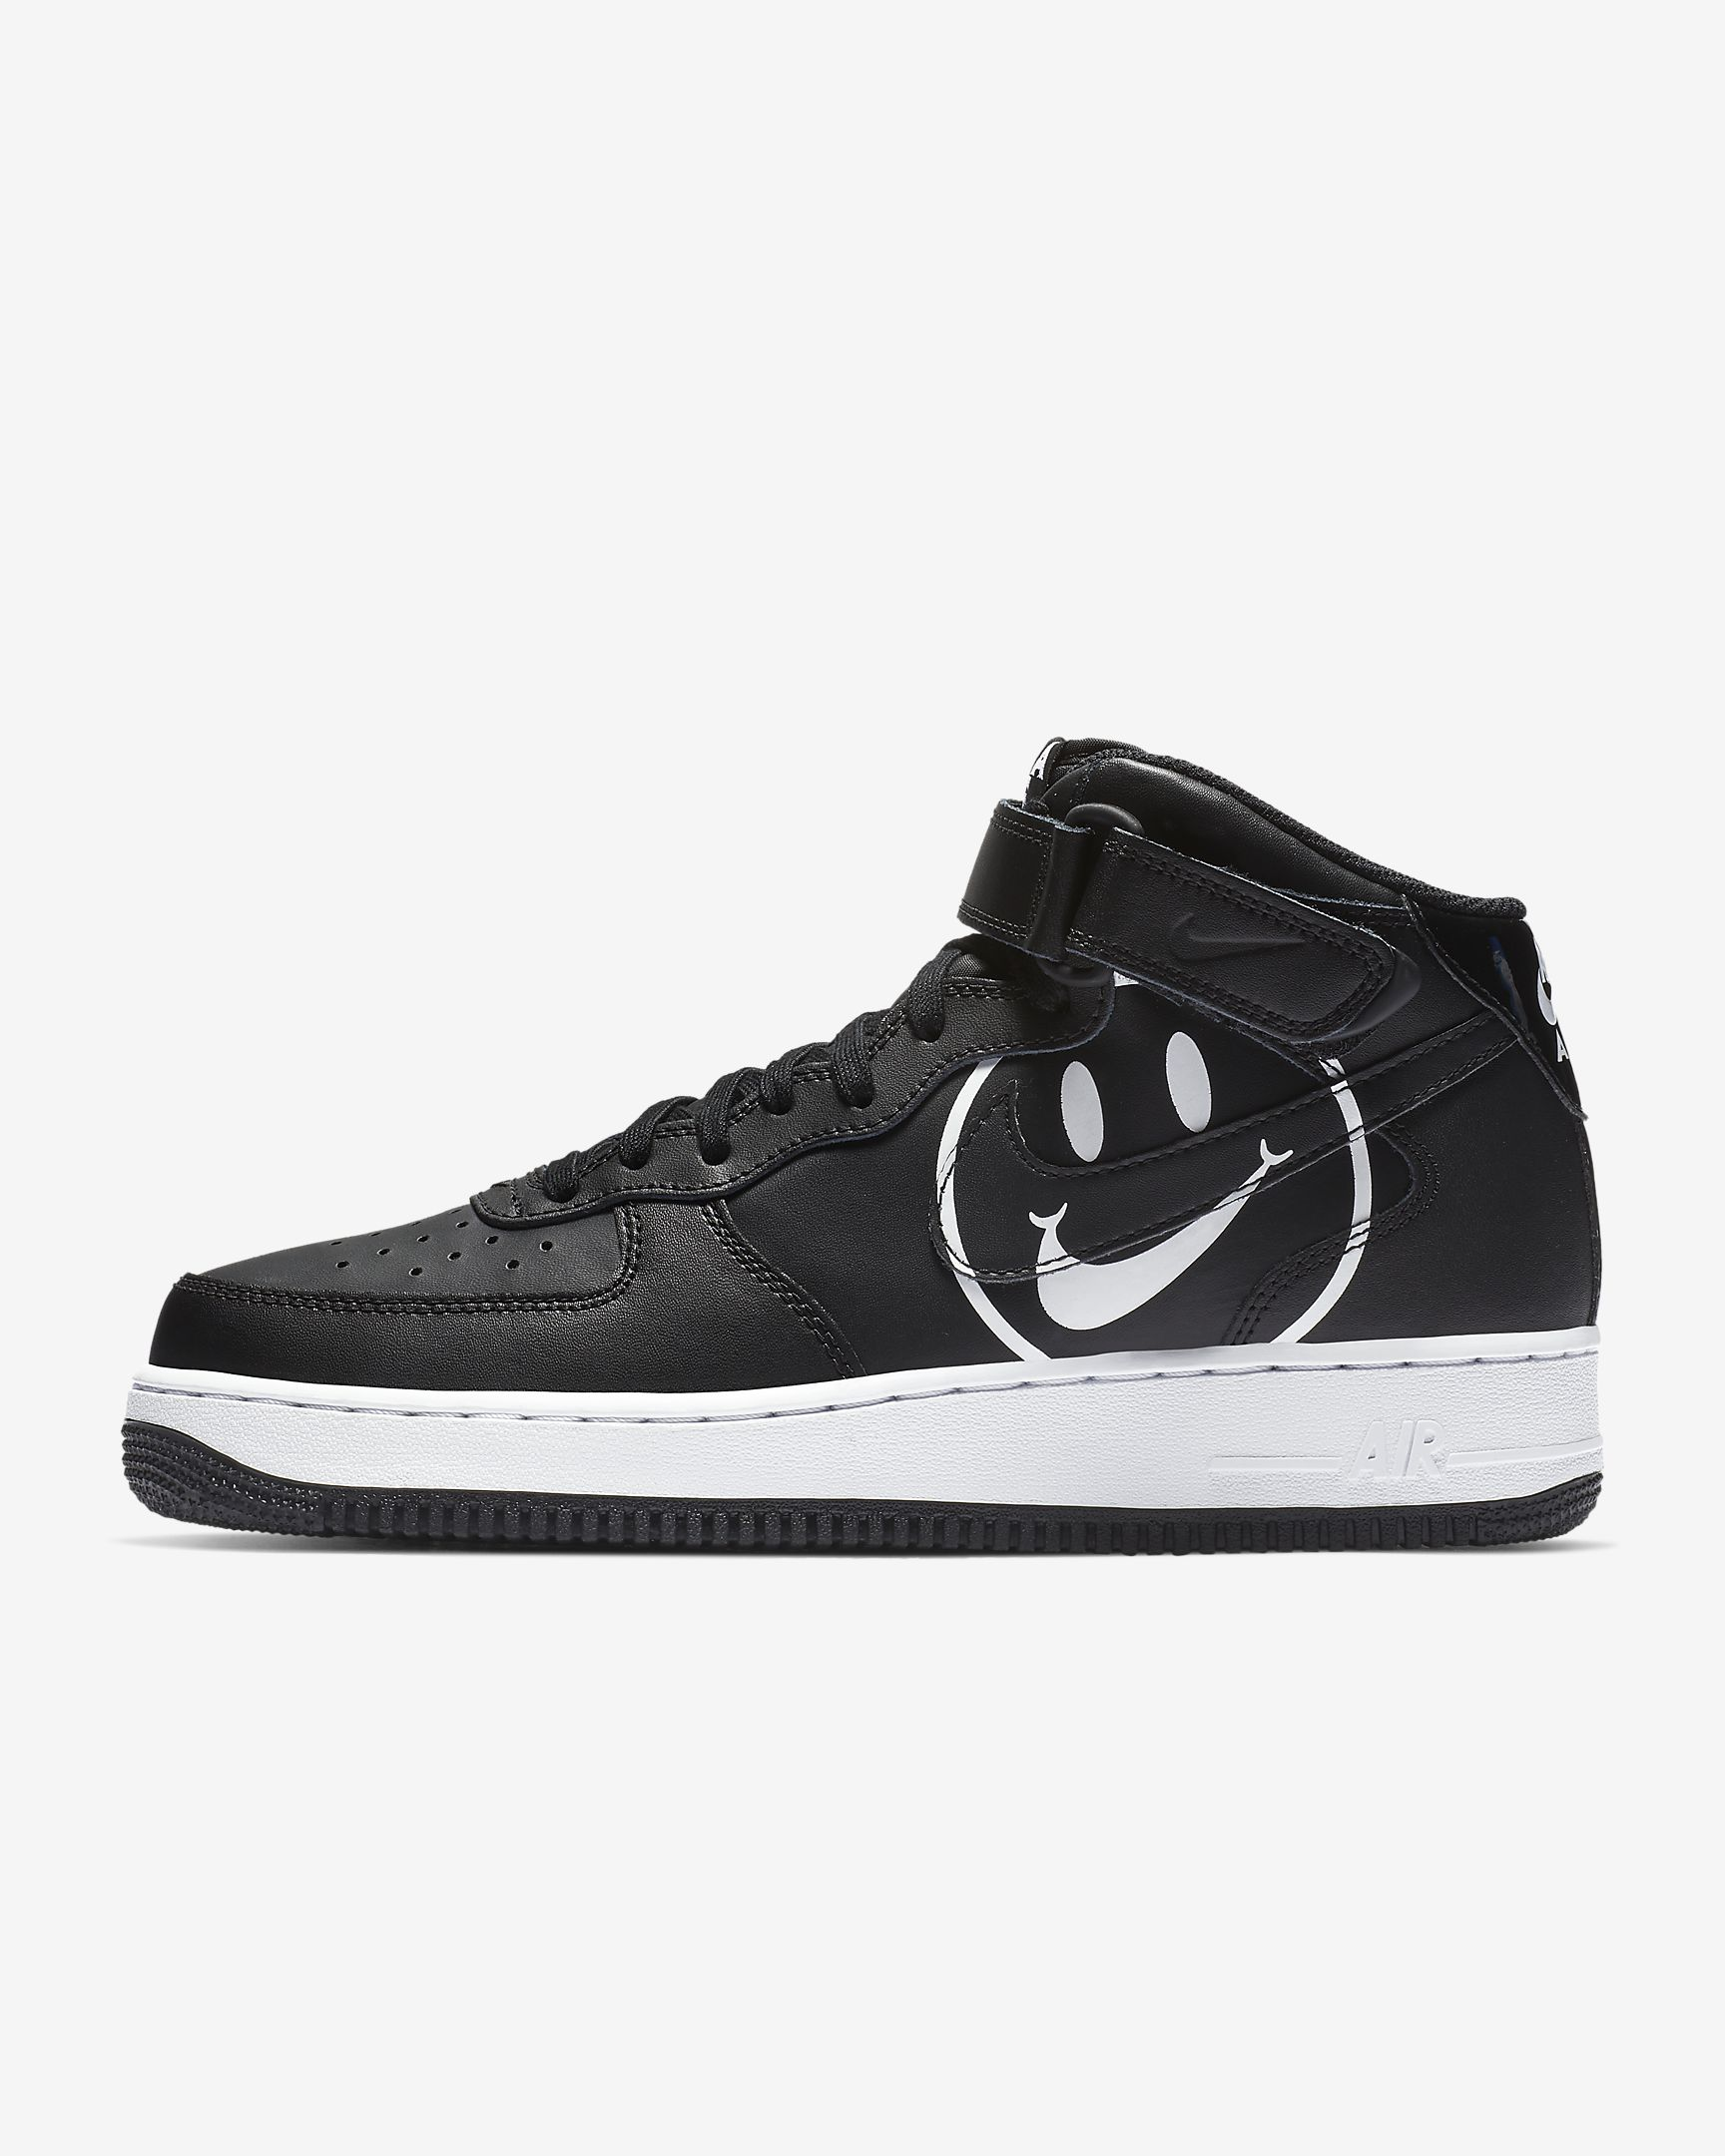 premium selection f61a6 7a19a Nike Air Force 1 Mid '07 LV8 2 Review — What is a Gentleman